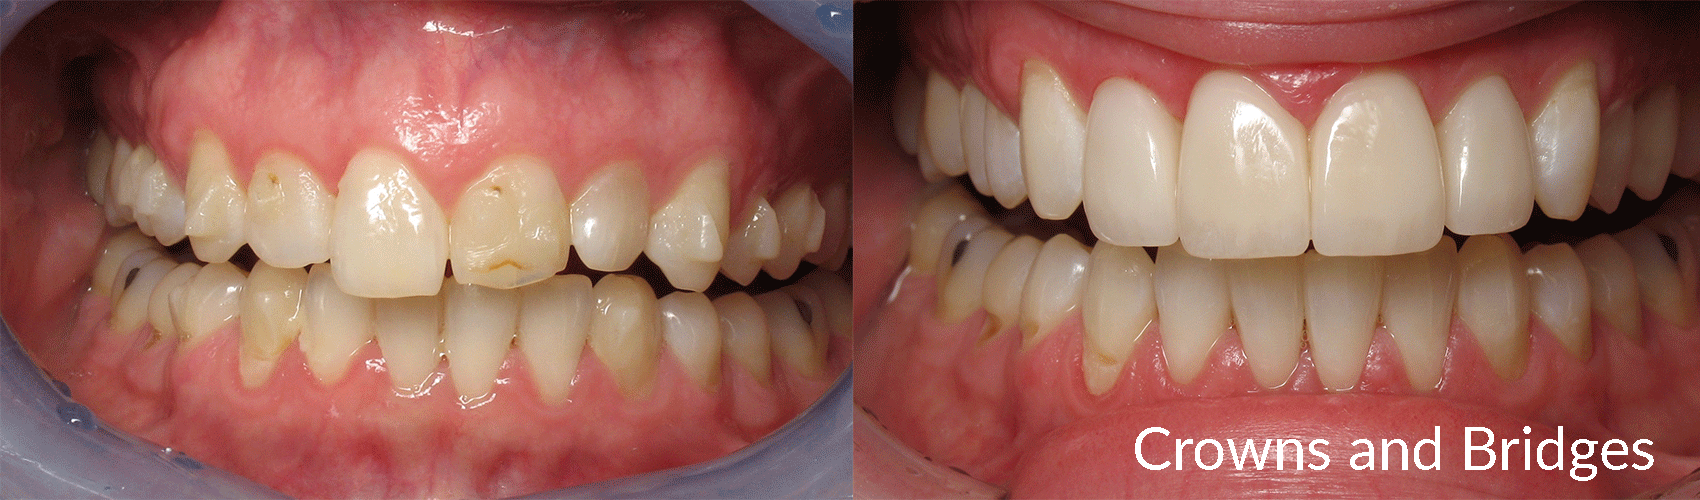 Before and after case of a crowns and bridges treatment